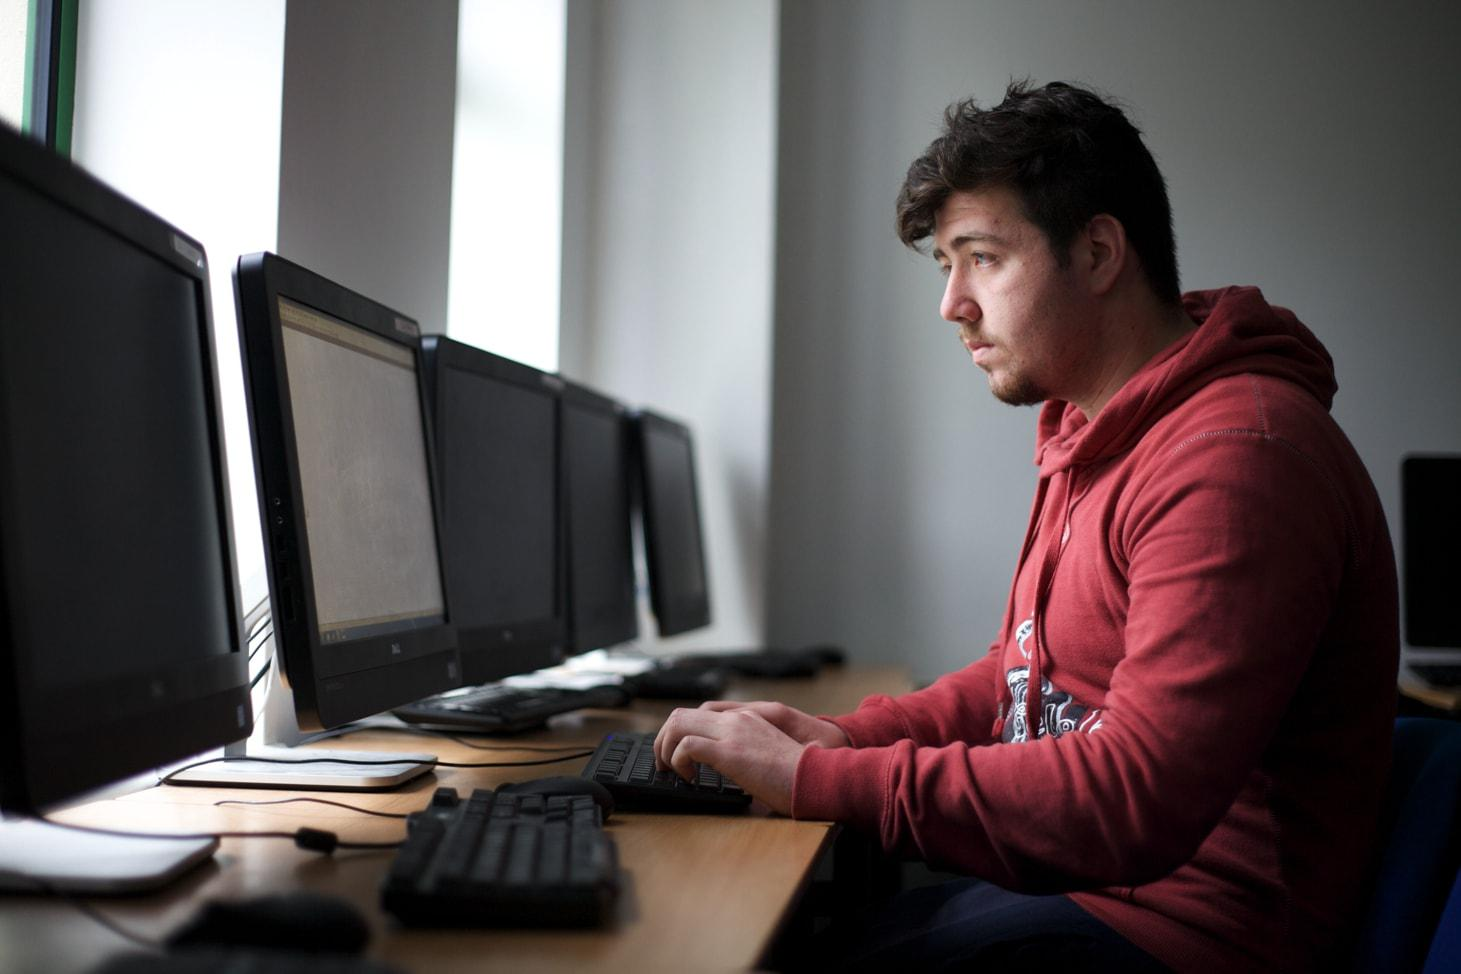 Student working in lab in Computing